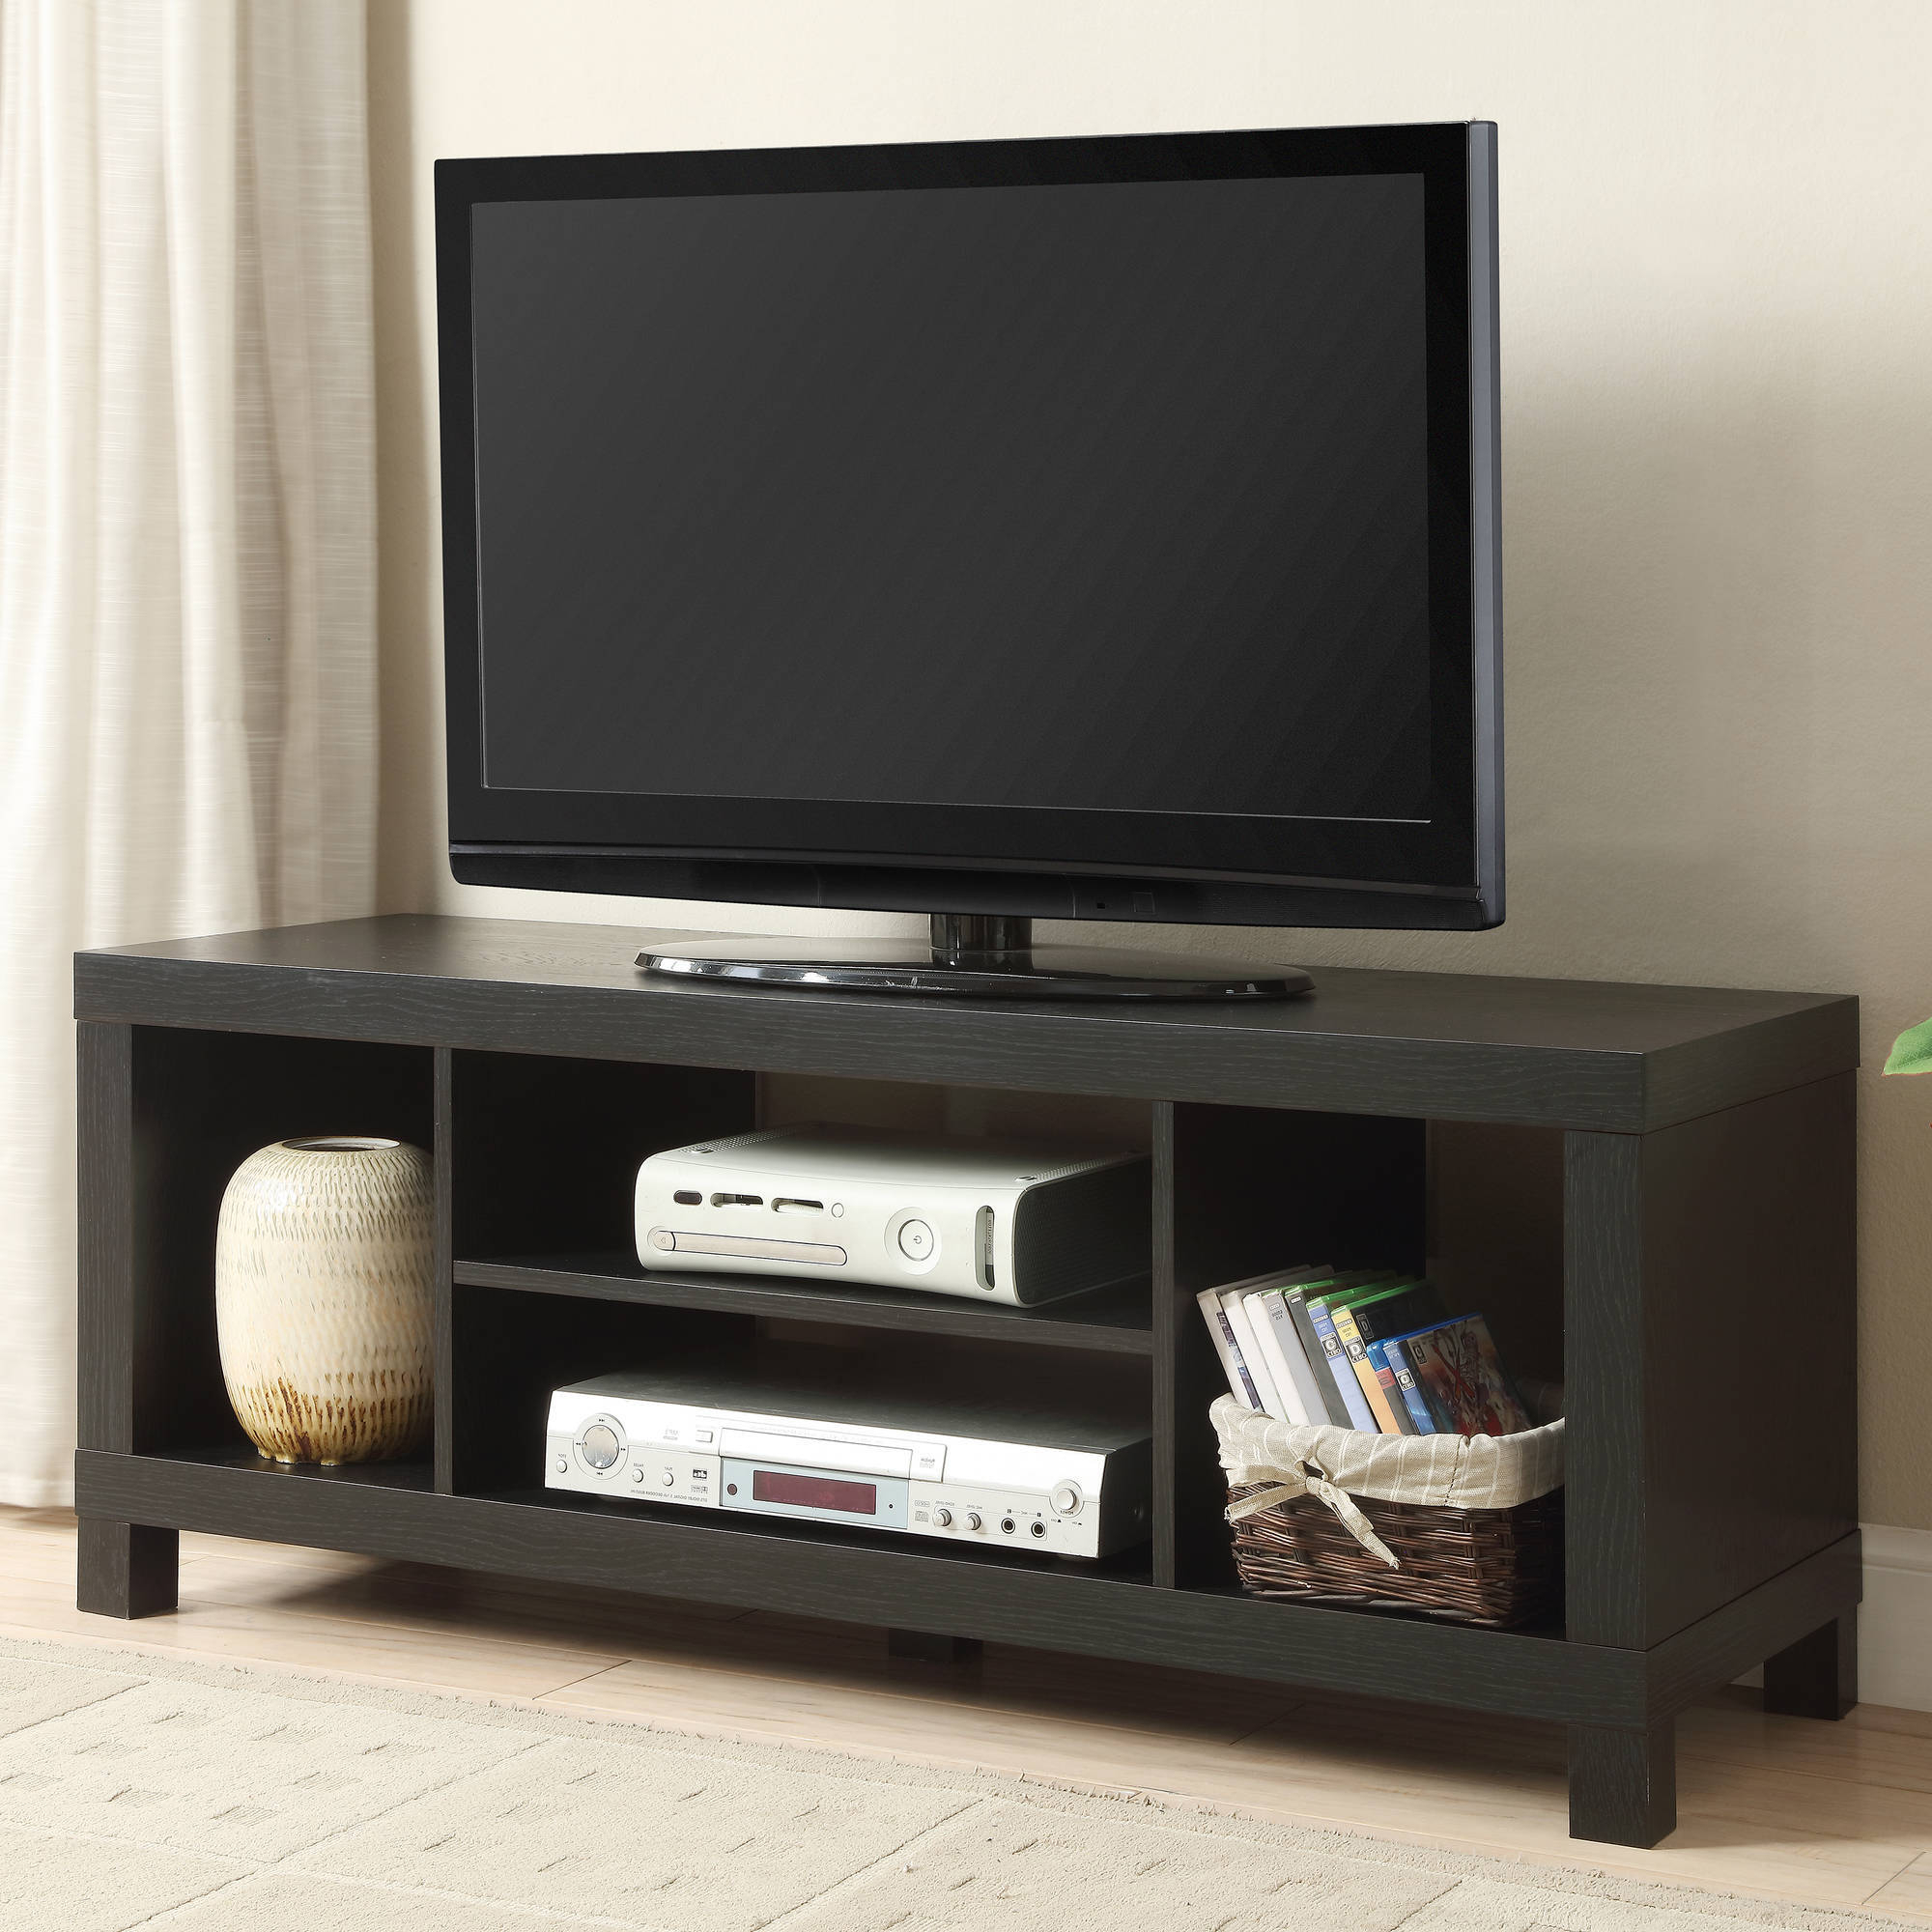 42 Inch Tv Stand Entertainment Center Home Theater Media Storage Throughout Favorite Tv Tables (Gallery 8 of 20)